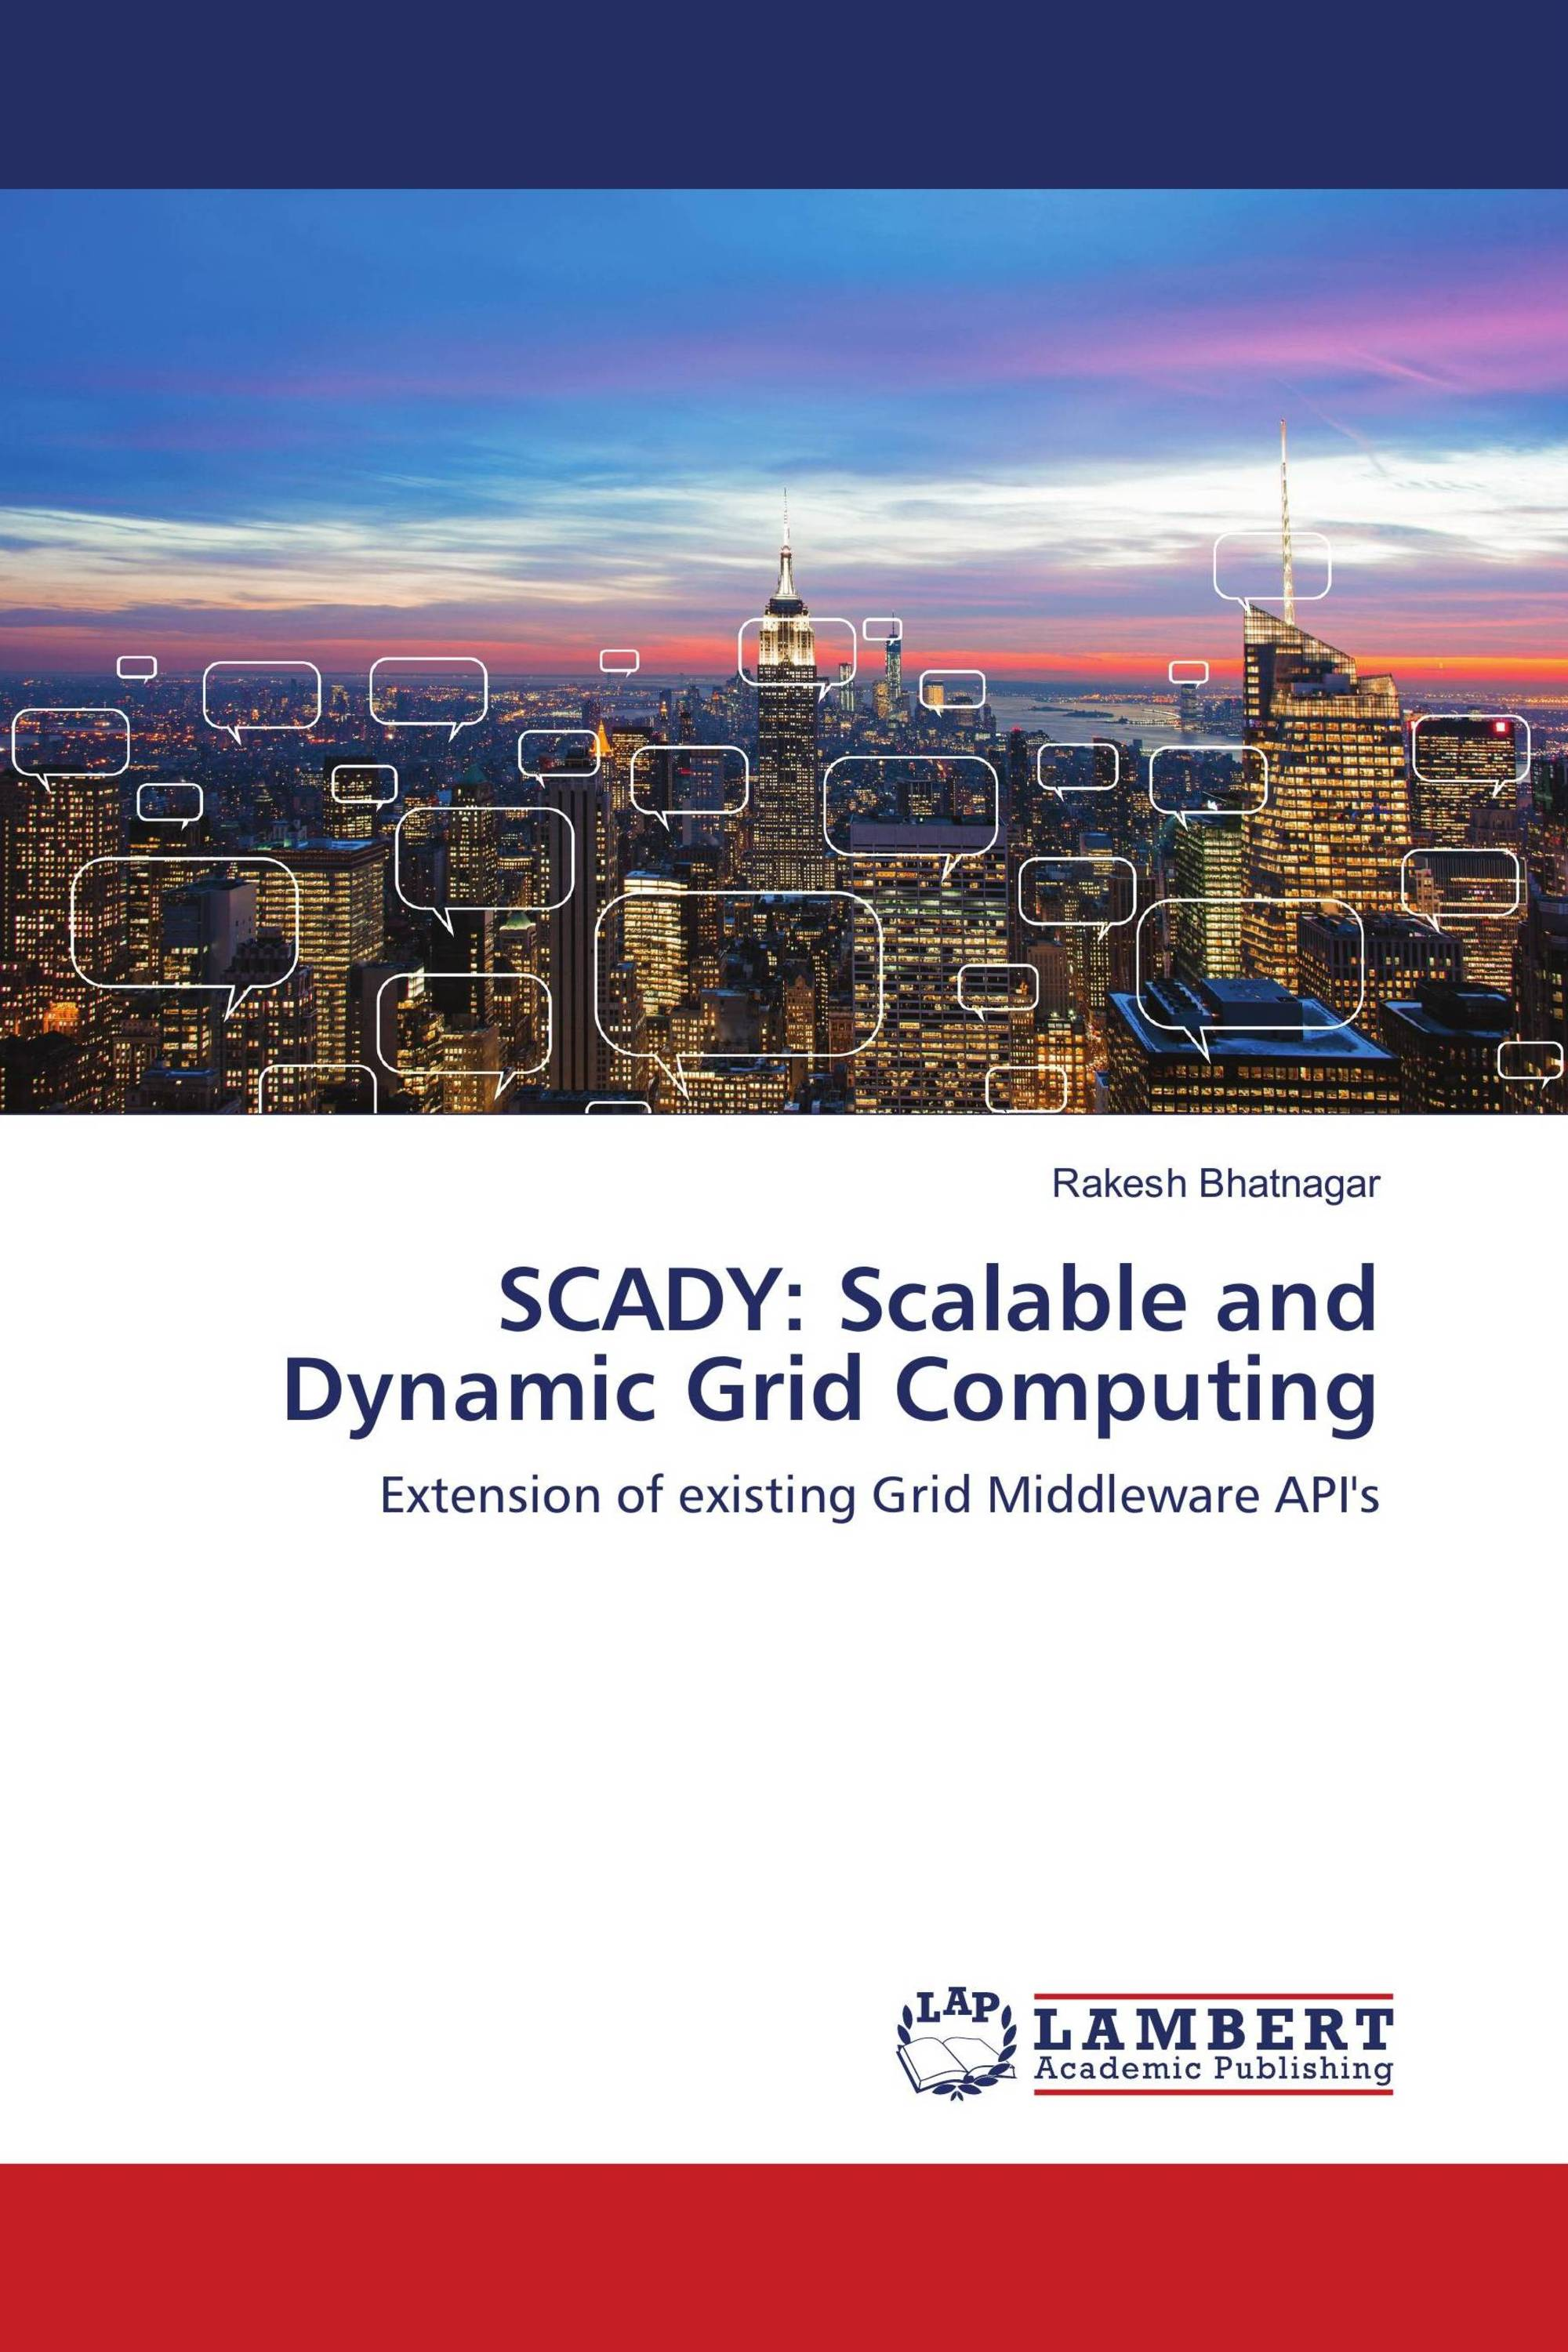 SCADY: Scalable and Dynamic Grid Computing